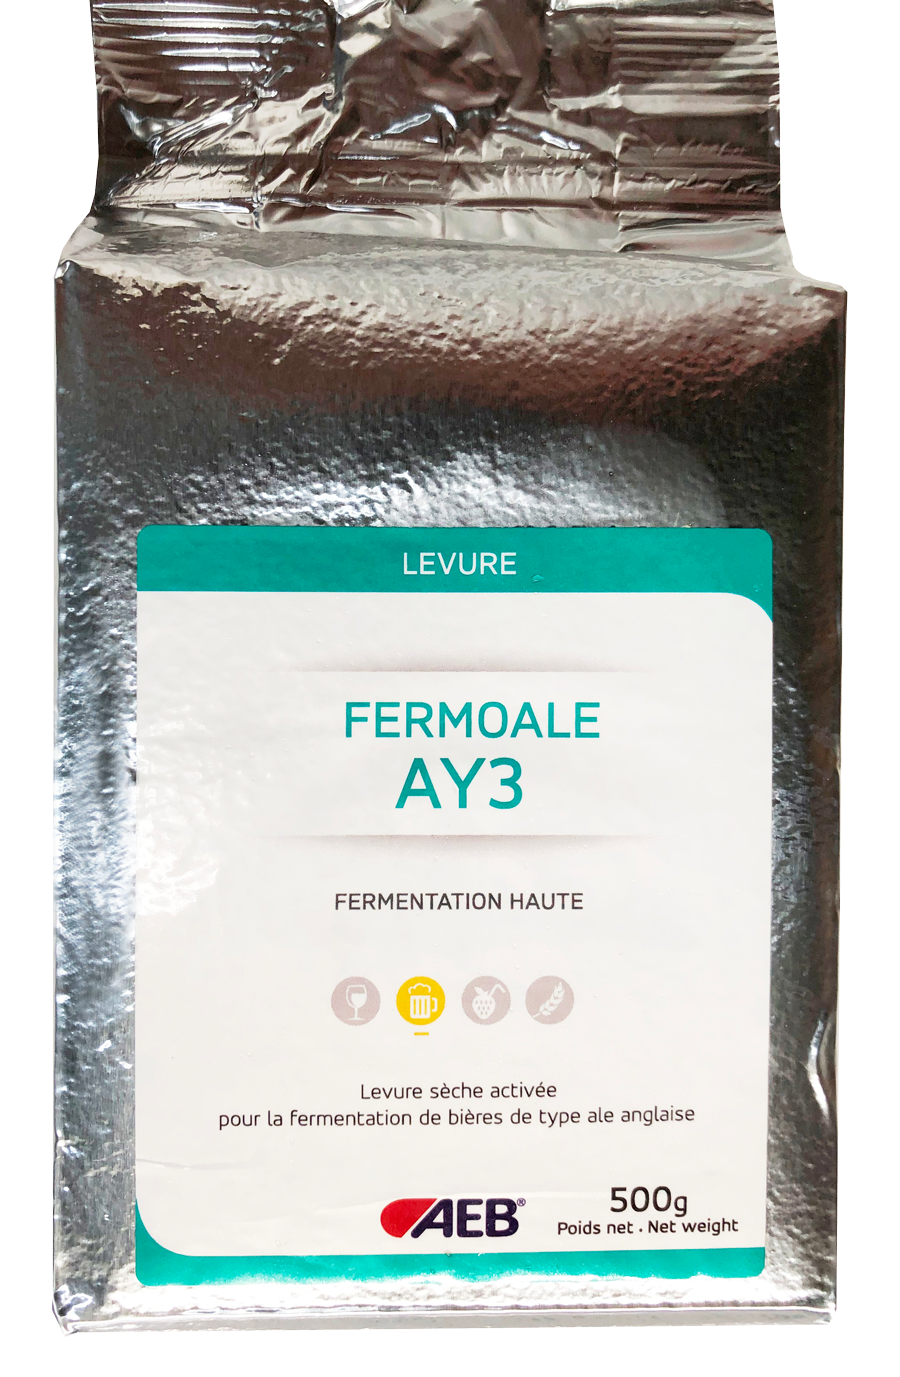 FERMOALE AY3 - DRY YEAST